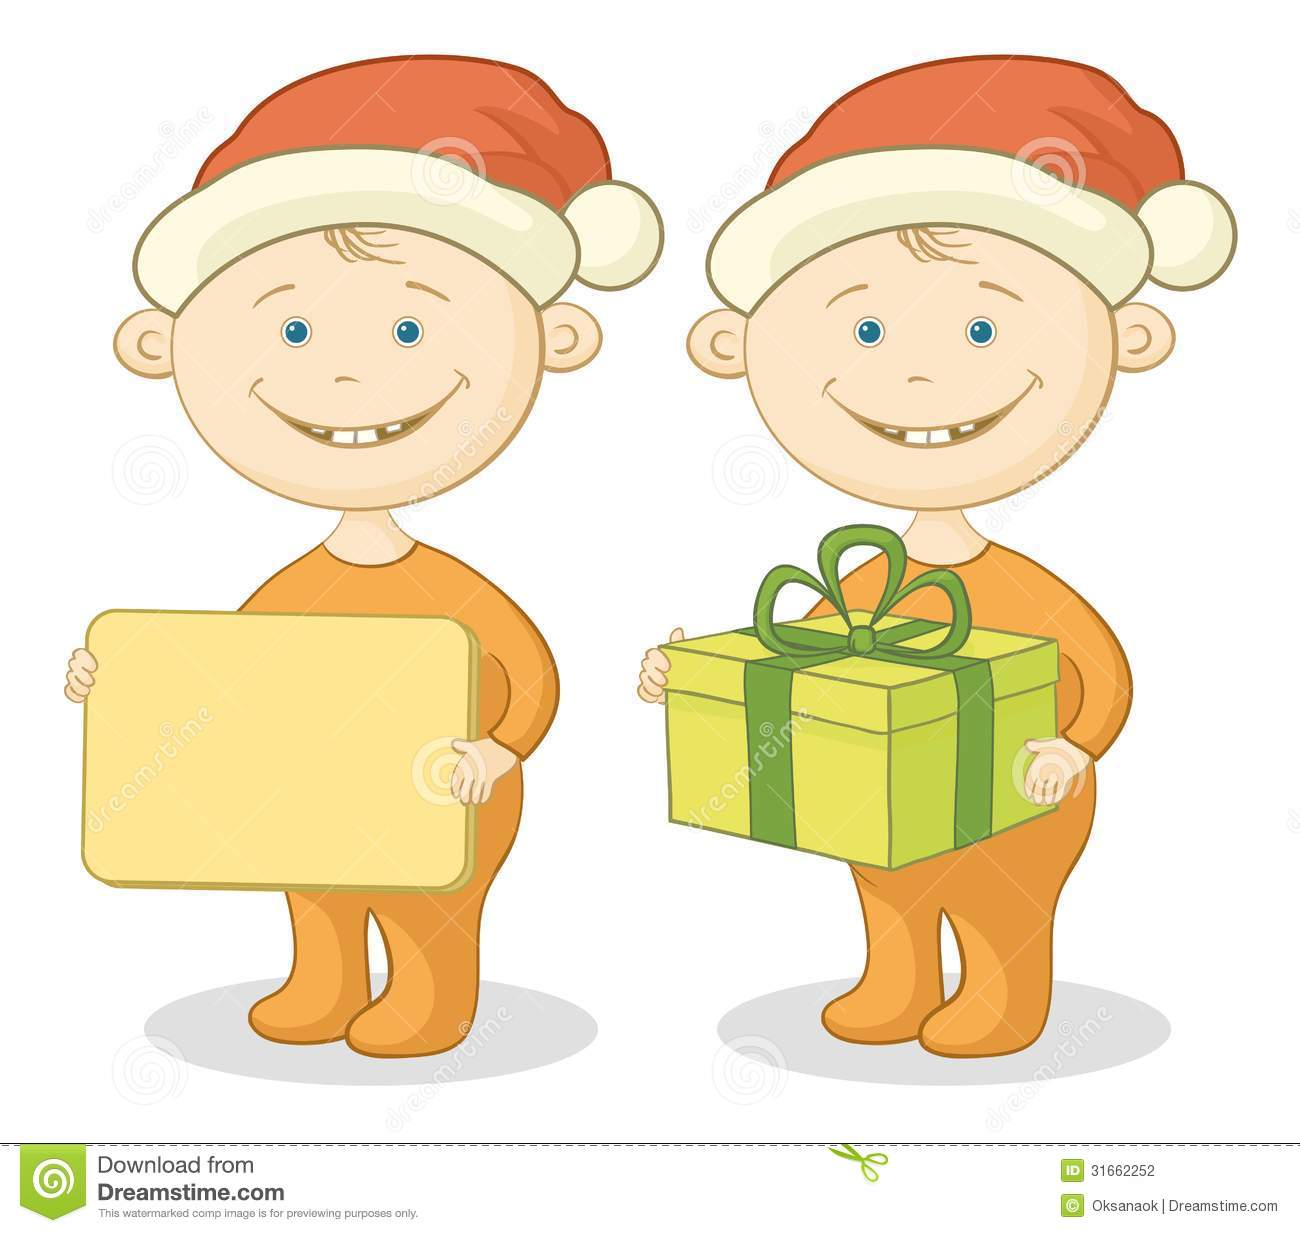 Cartoon children in a santa claus hats with a holiday gift box and